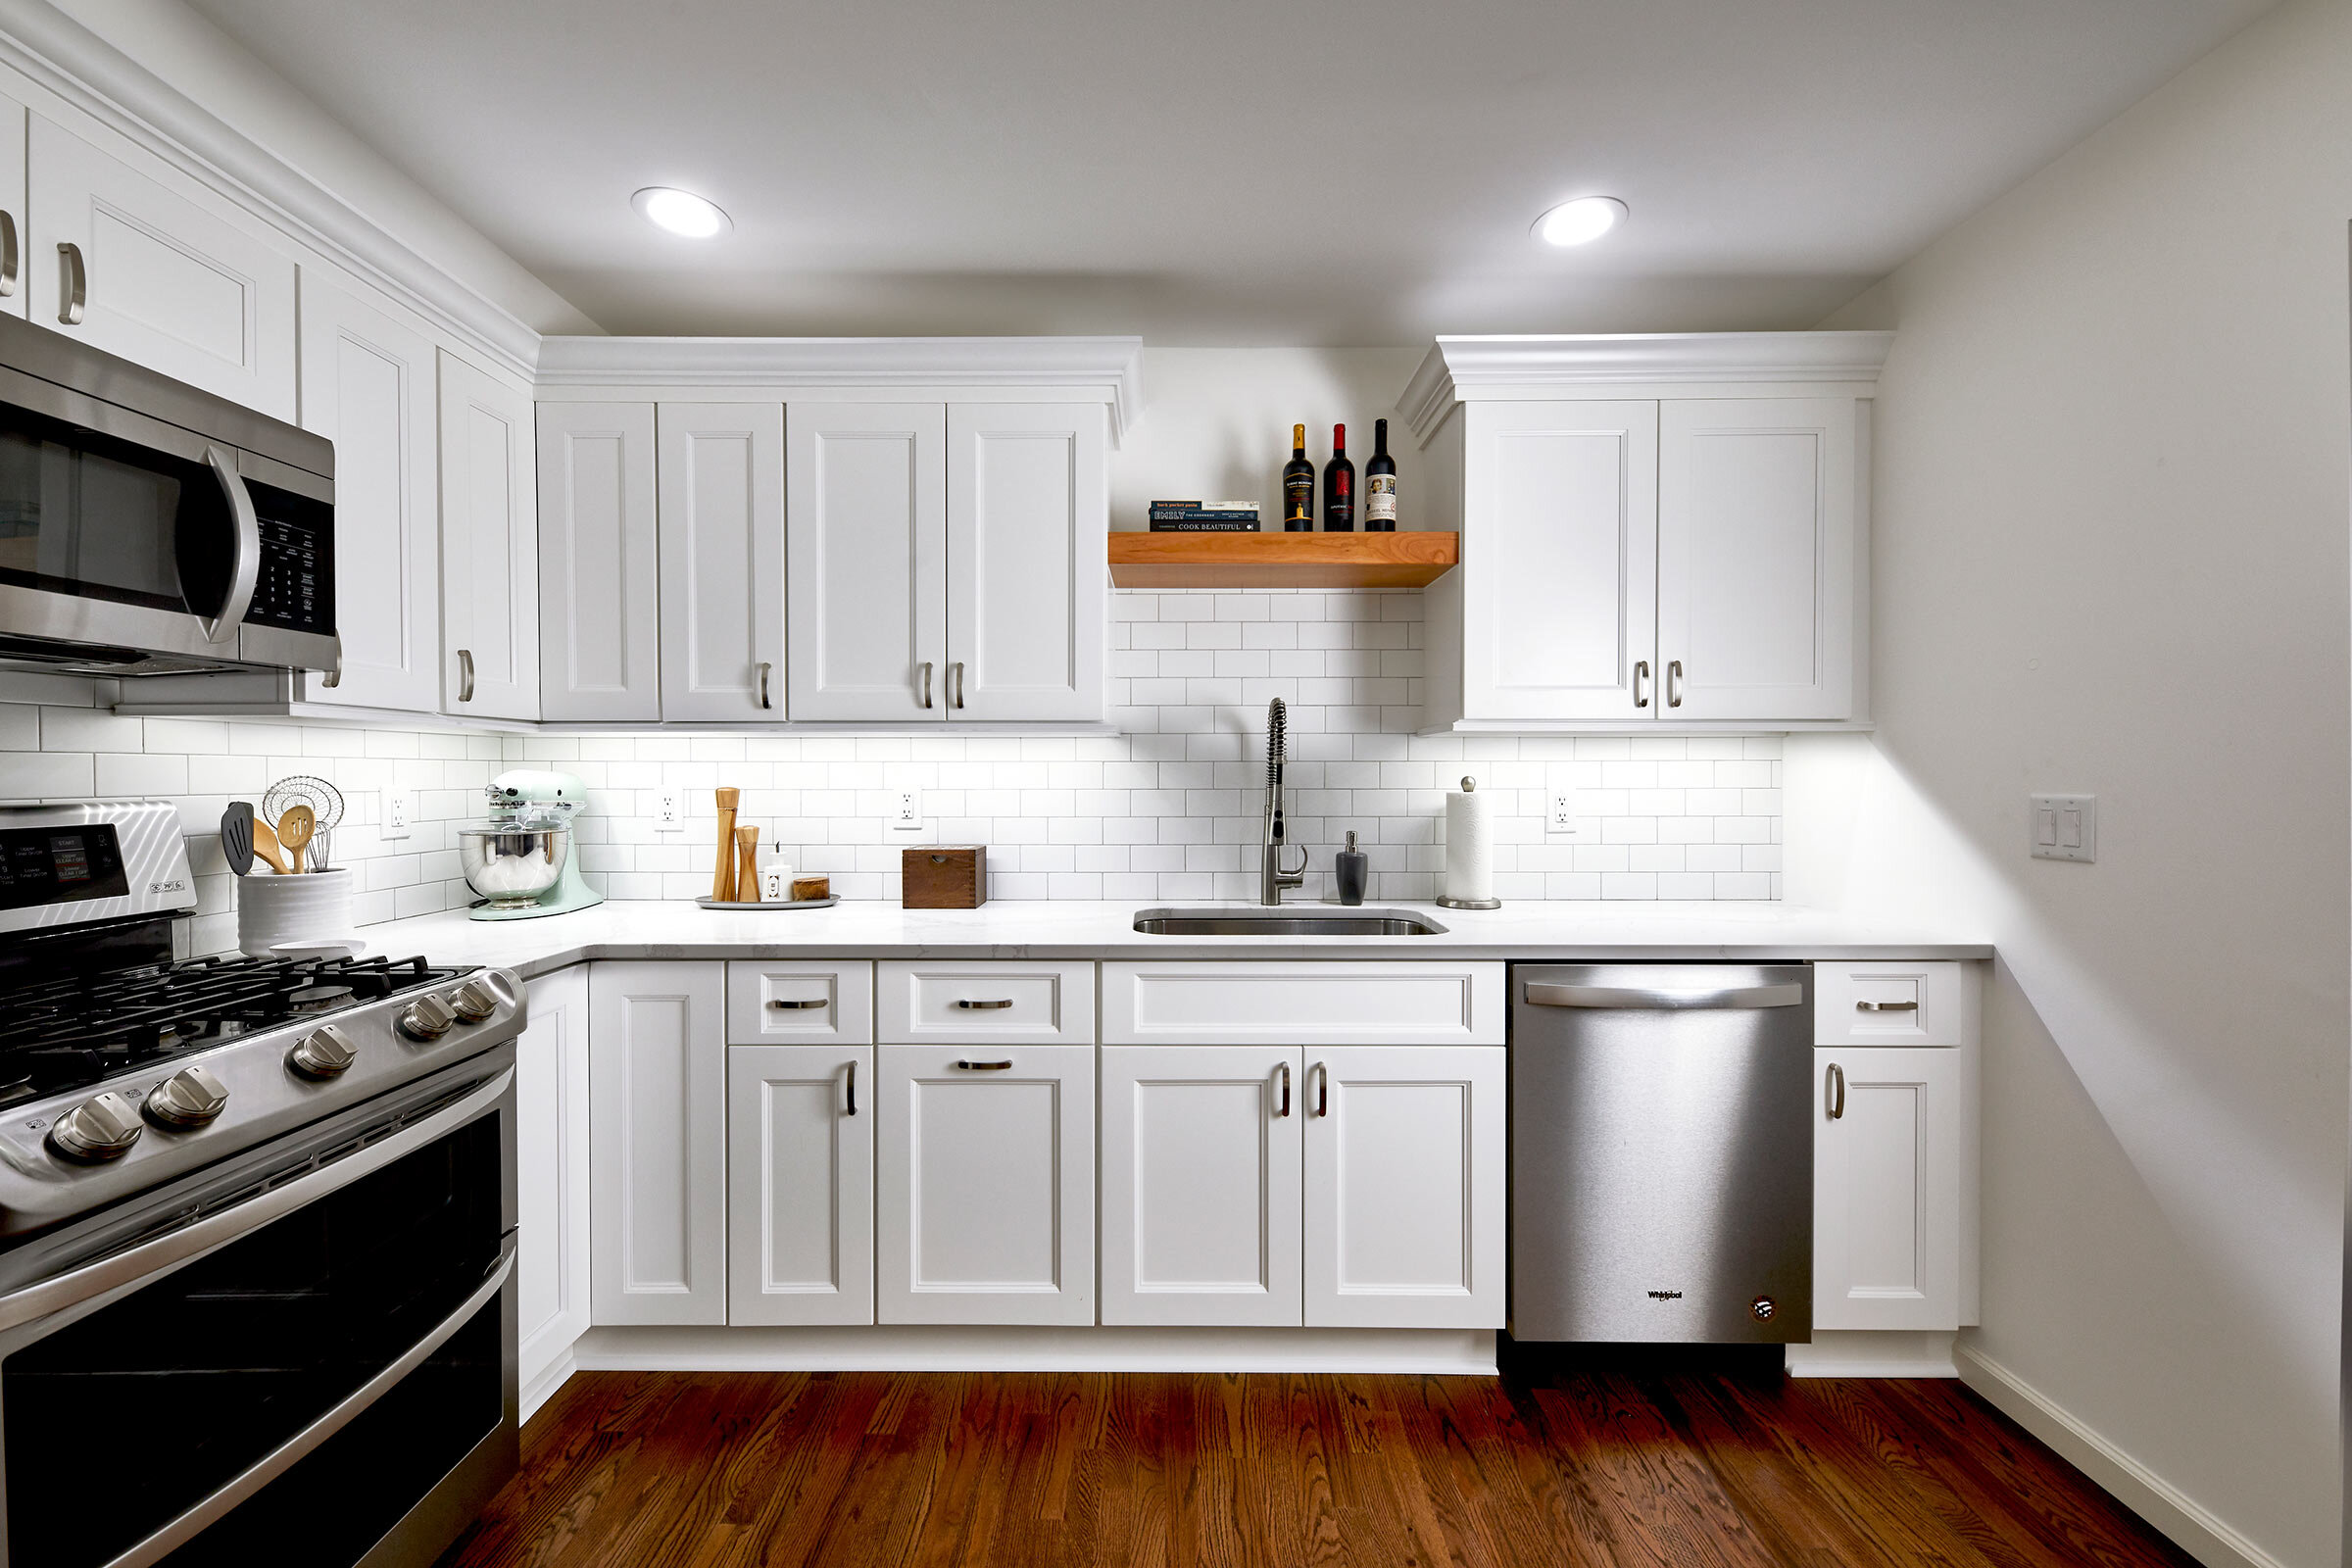 thompson-fine-home-renovations-kitchen-subway-tile-wood-2.jpg